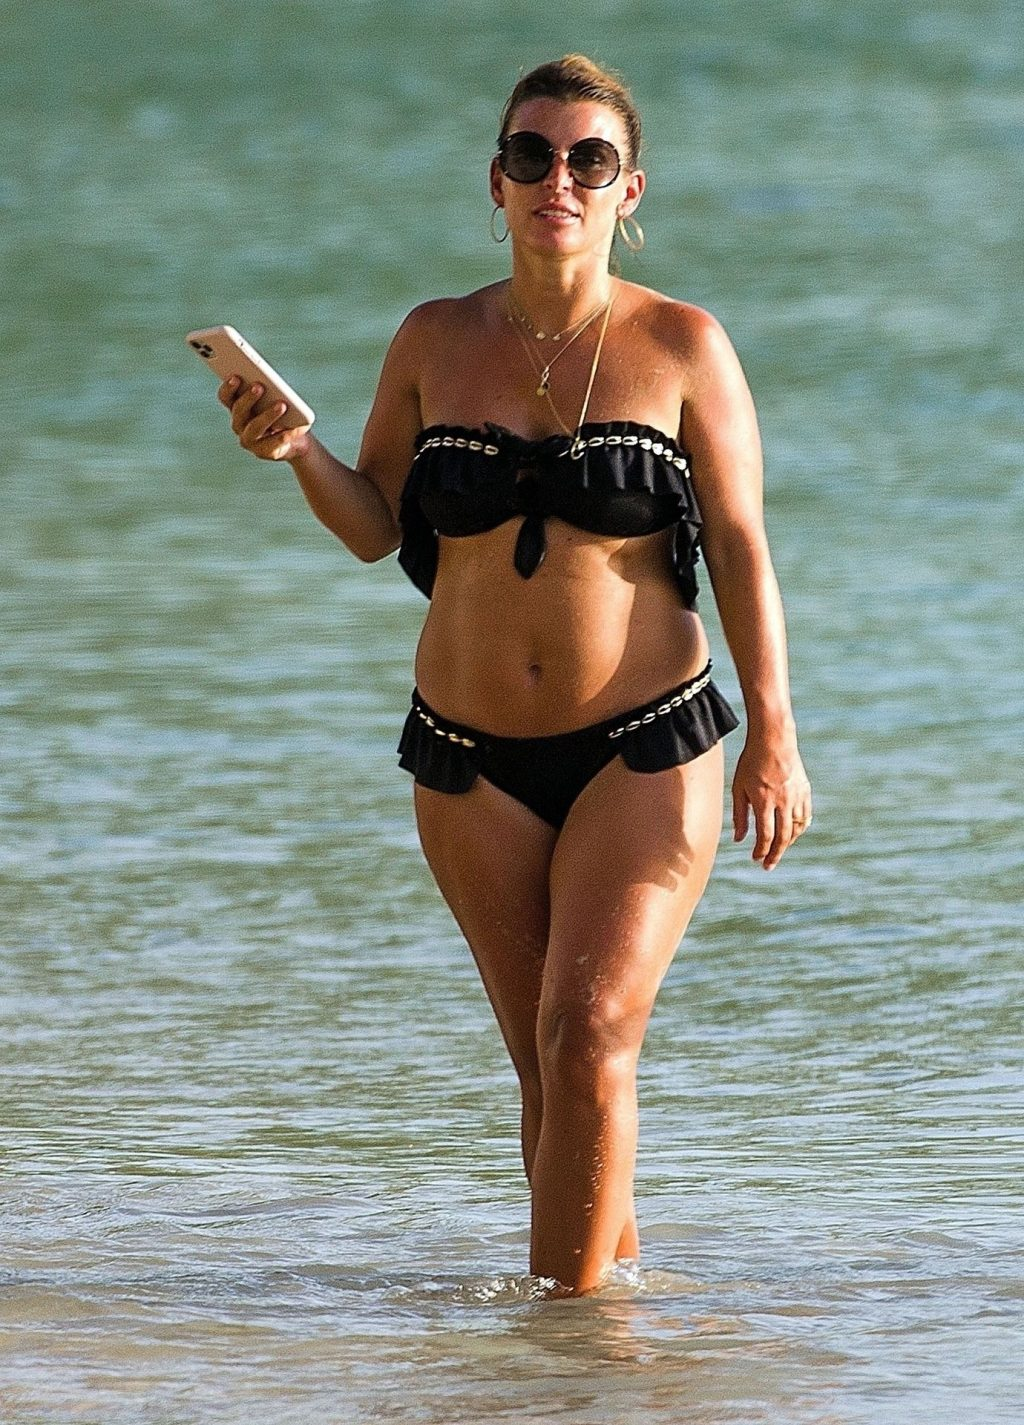 Coleen Rooney Dons Her Skimpy Black Bikini on Holiday in Barbados (166 Photos)